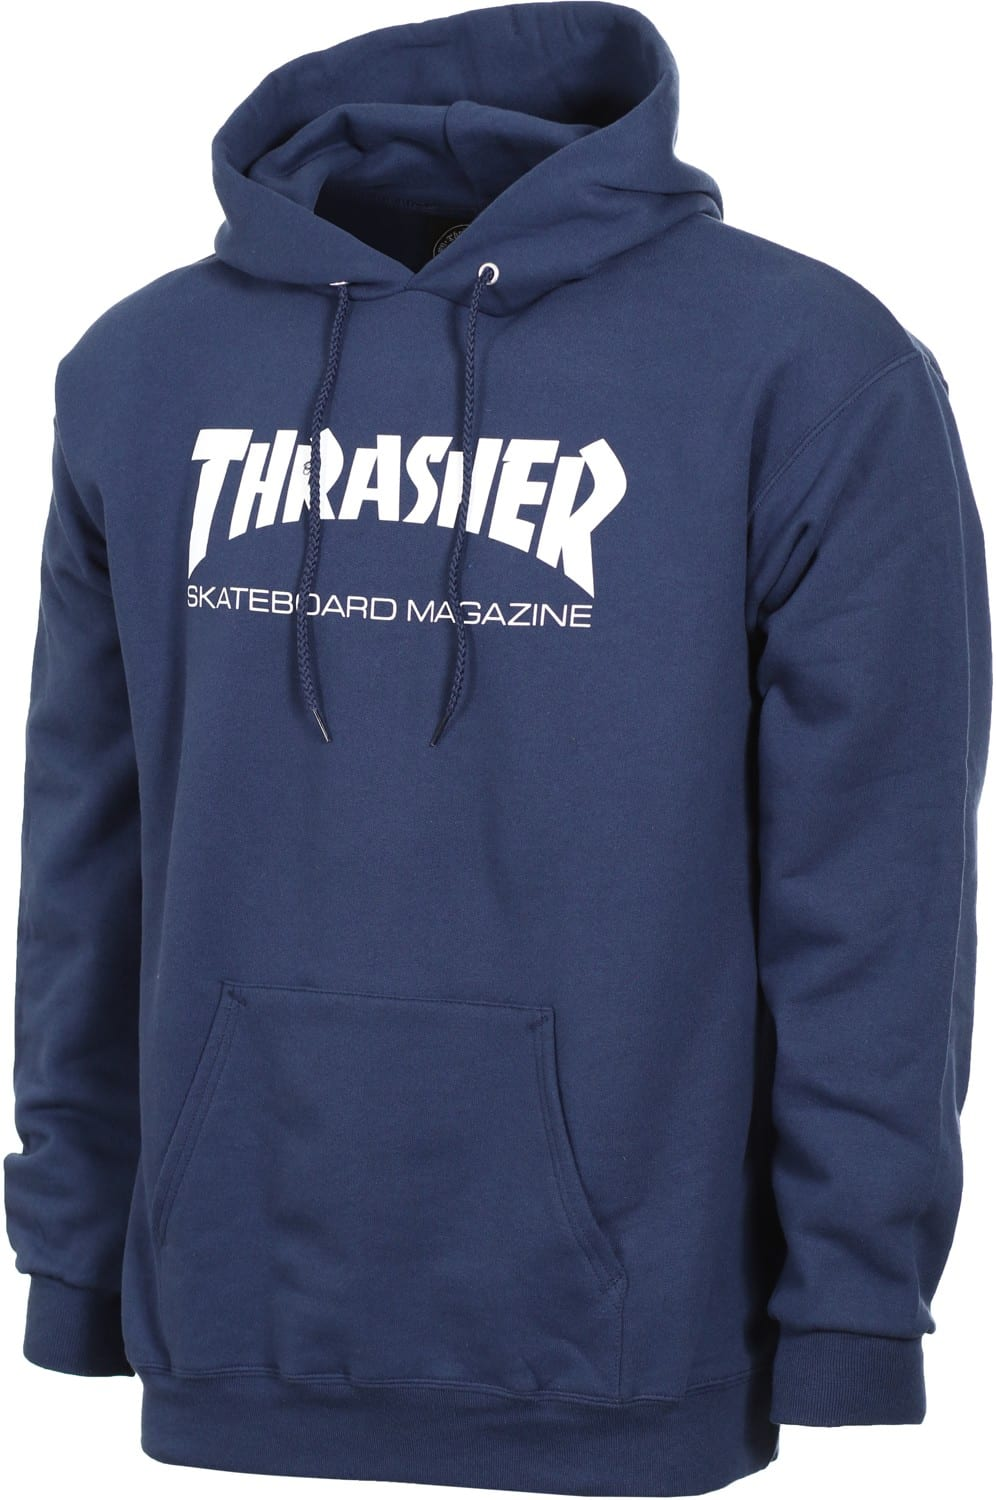 Skate Pullover Hoodies from Volcom, Thrasher, Independent and more